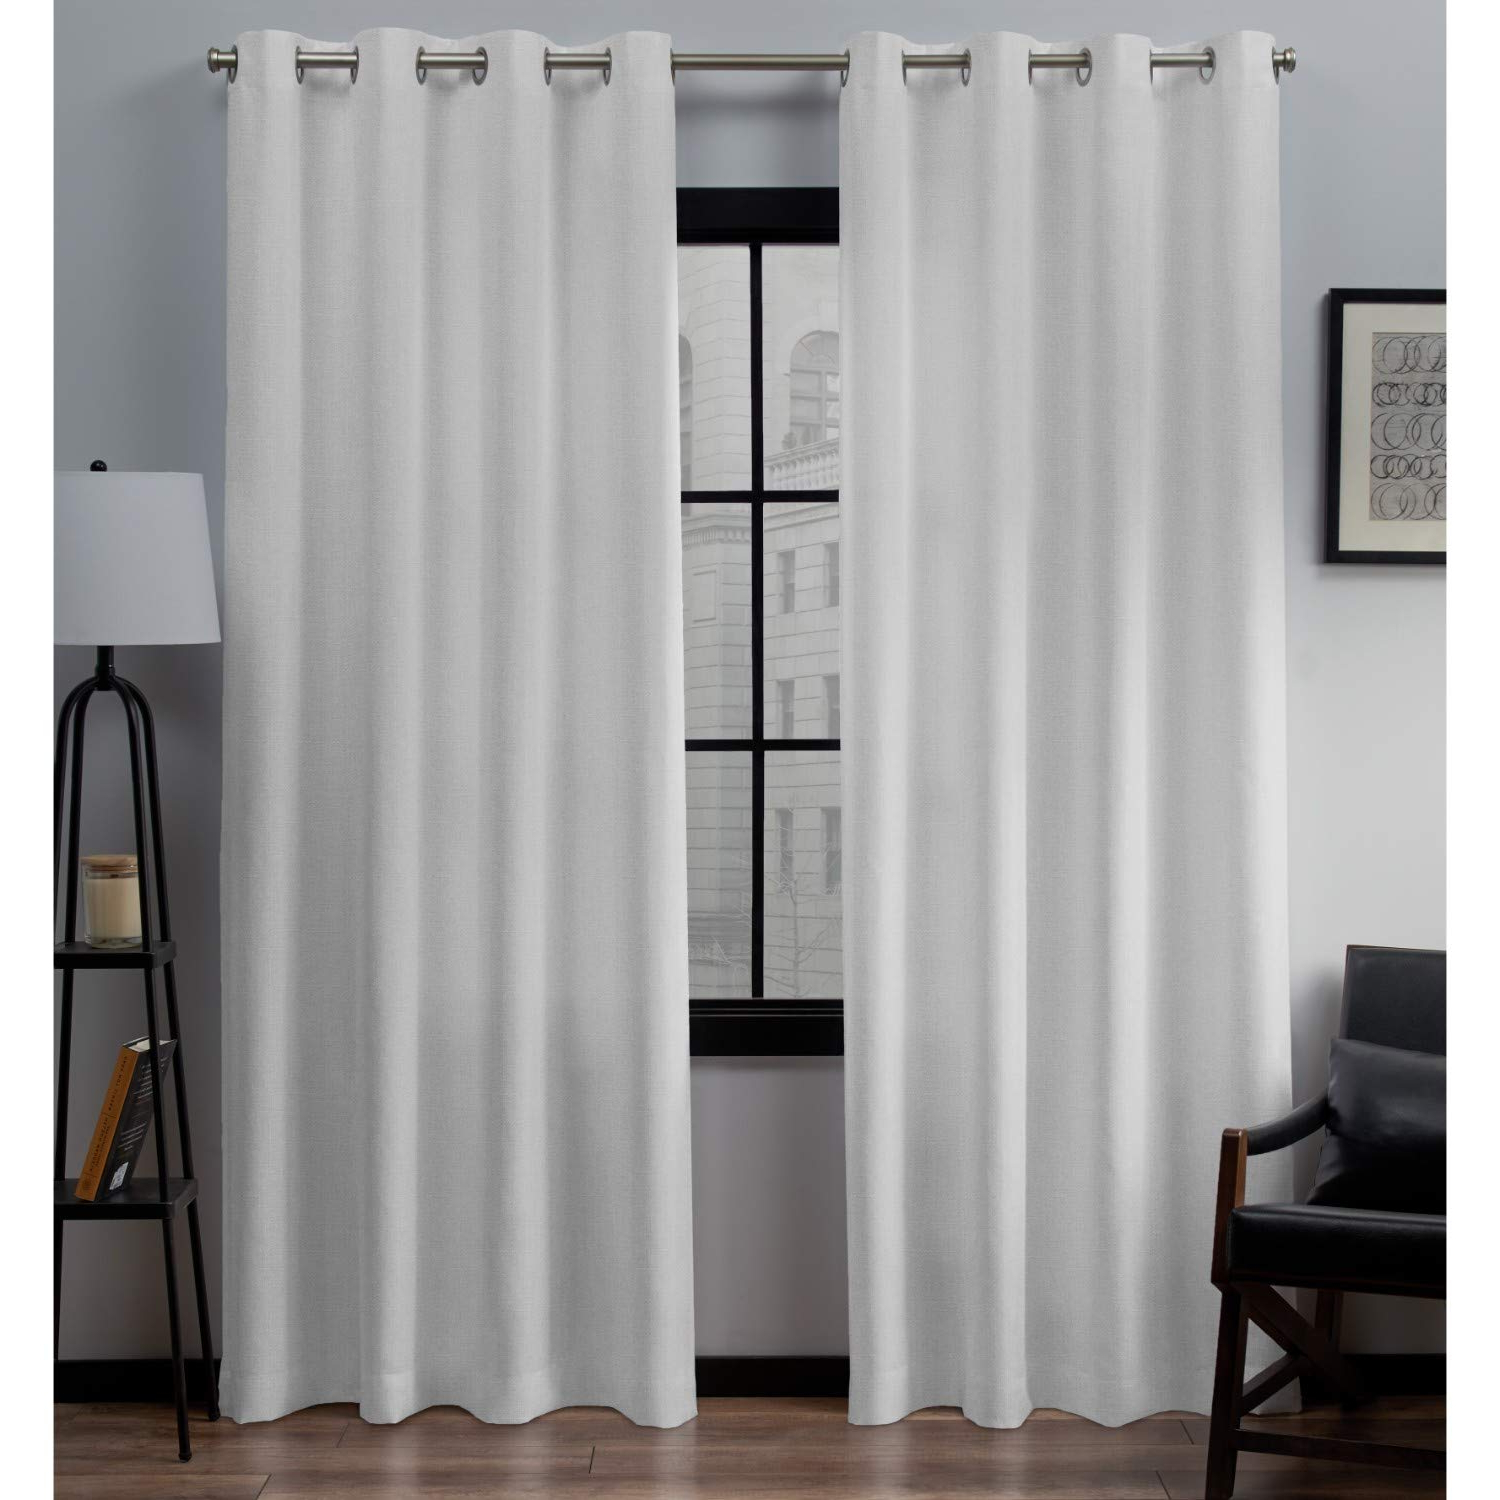 "Exclusive Home Curtains Loha Linen Window Curtain Panel Pair, 54"" X 108"", Winter White Within Most Current Linen Button Window Curtains Single Panel (View 10 of 20)"